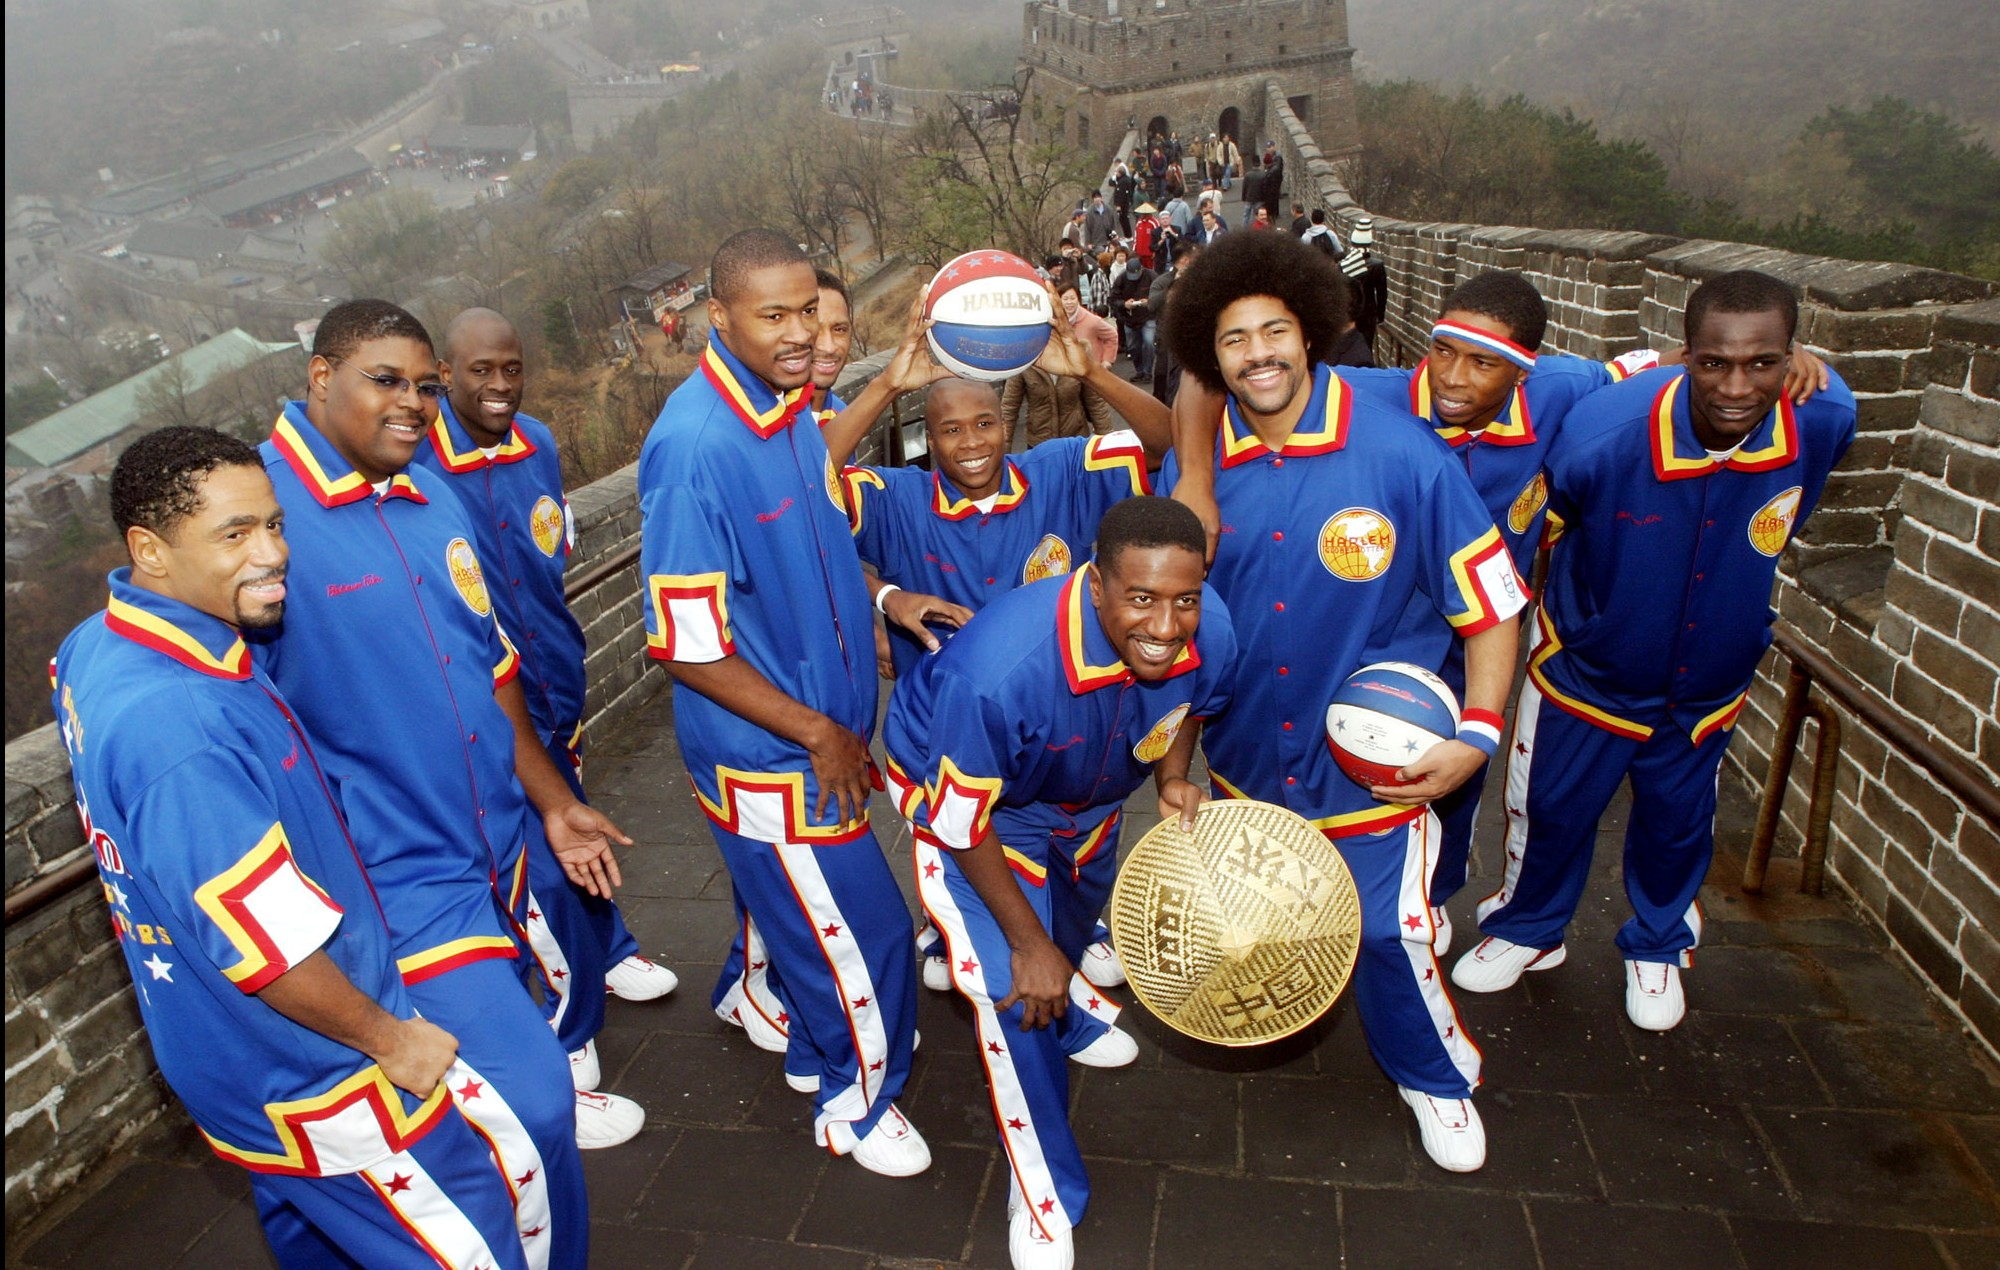 Members of the Harlem Globetrotters basketball team pose for pic